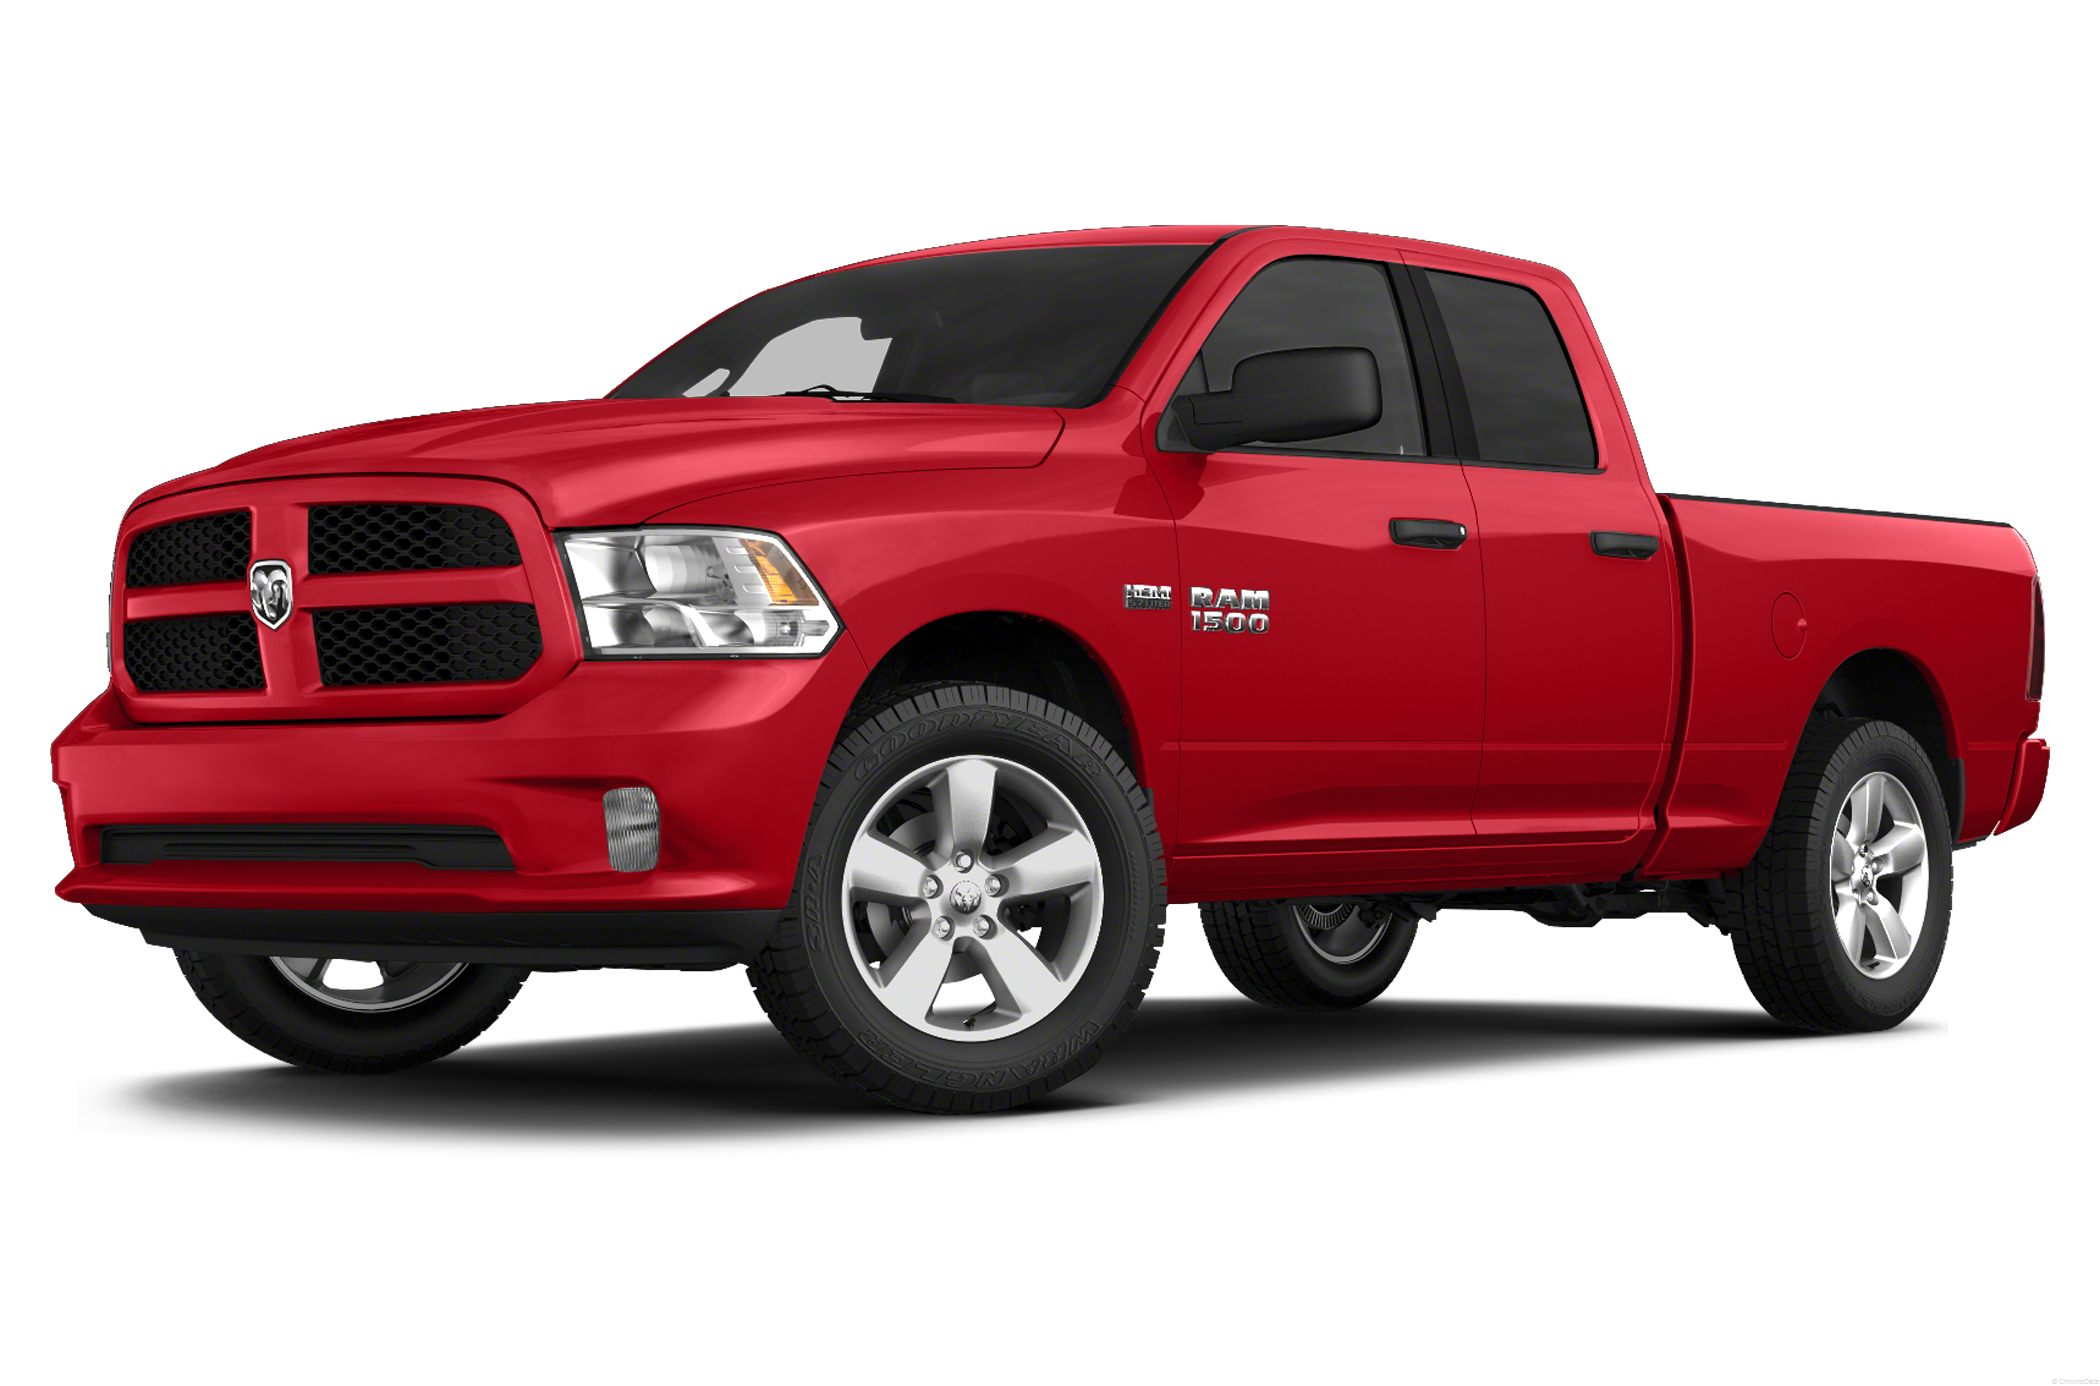 Dodge Ram 1500 Parts and Accessories